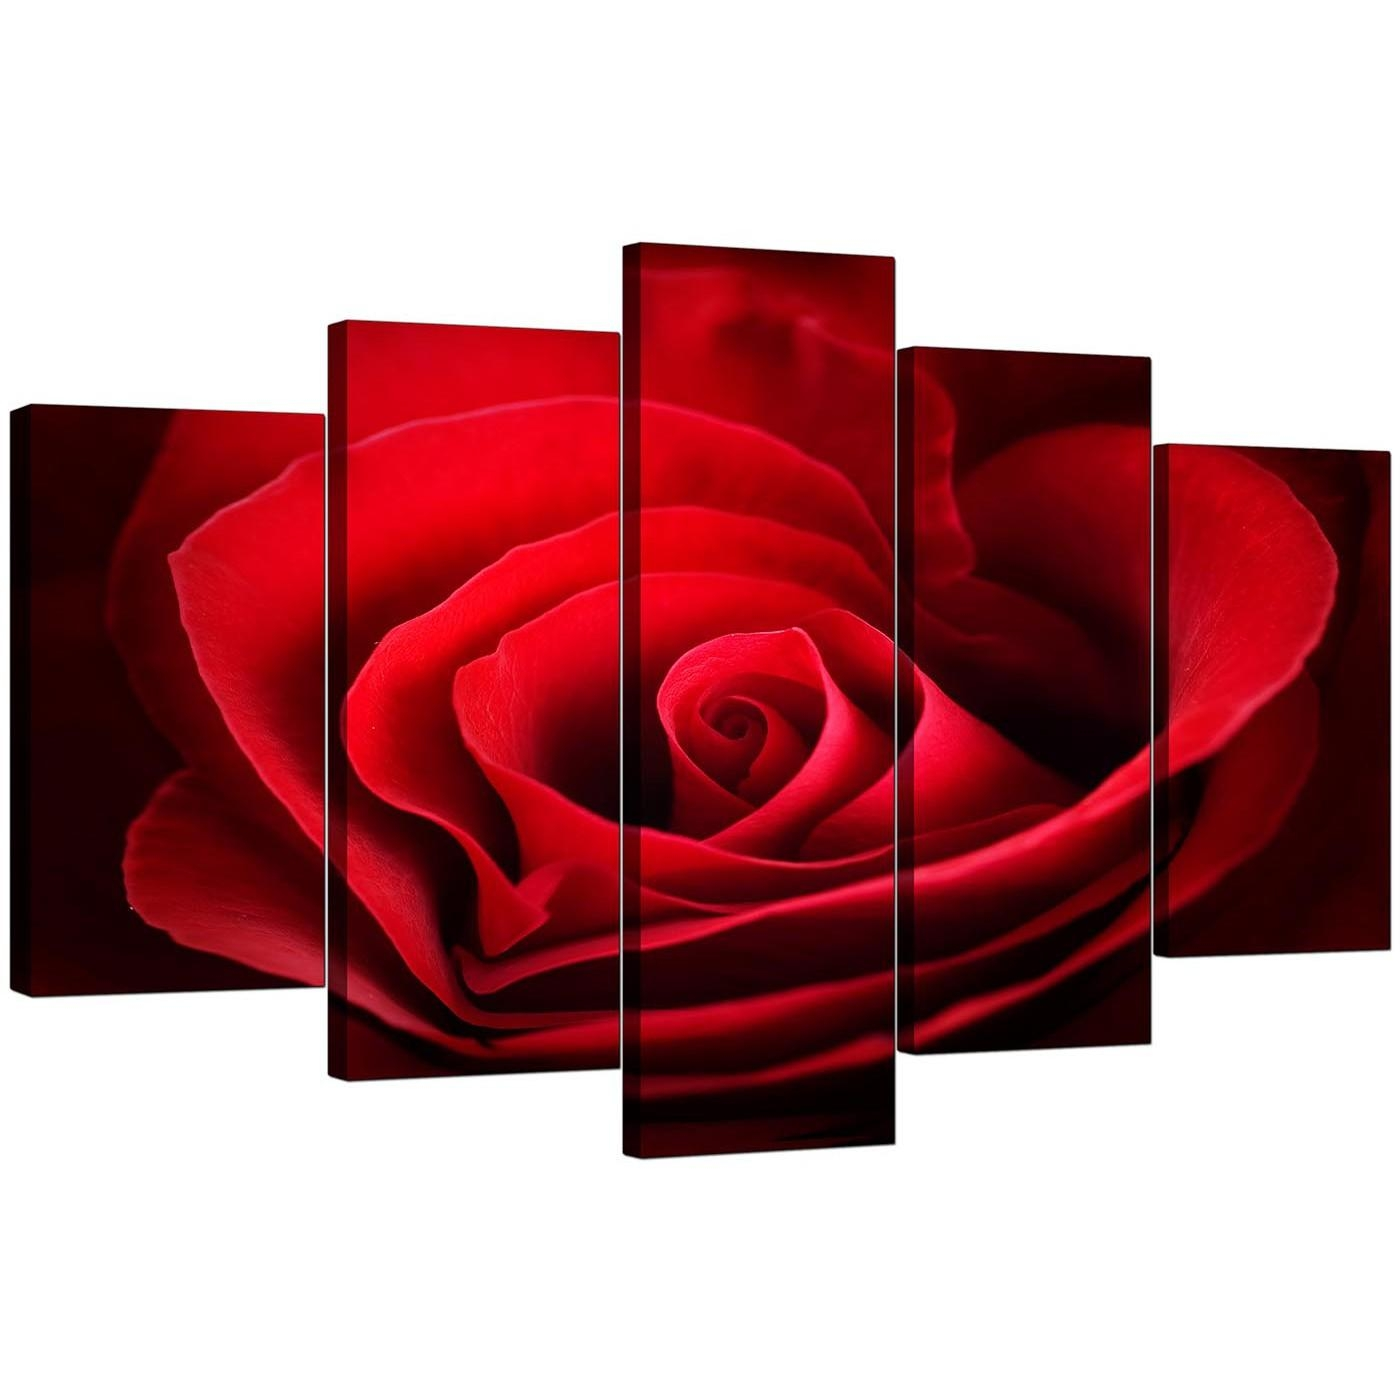 Extra Large Rose Canvas Wall Art 5 Panel In Red Within Red Rose Wall Art (View 2 of 20)